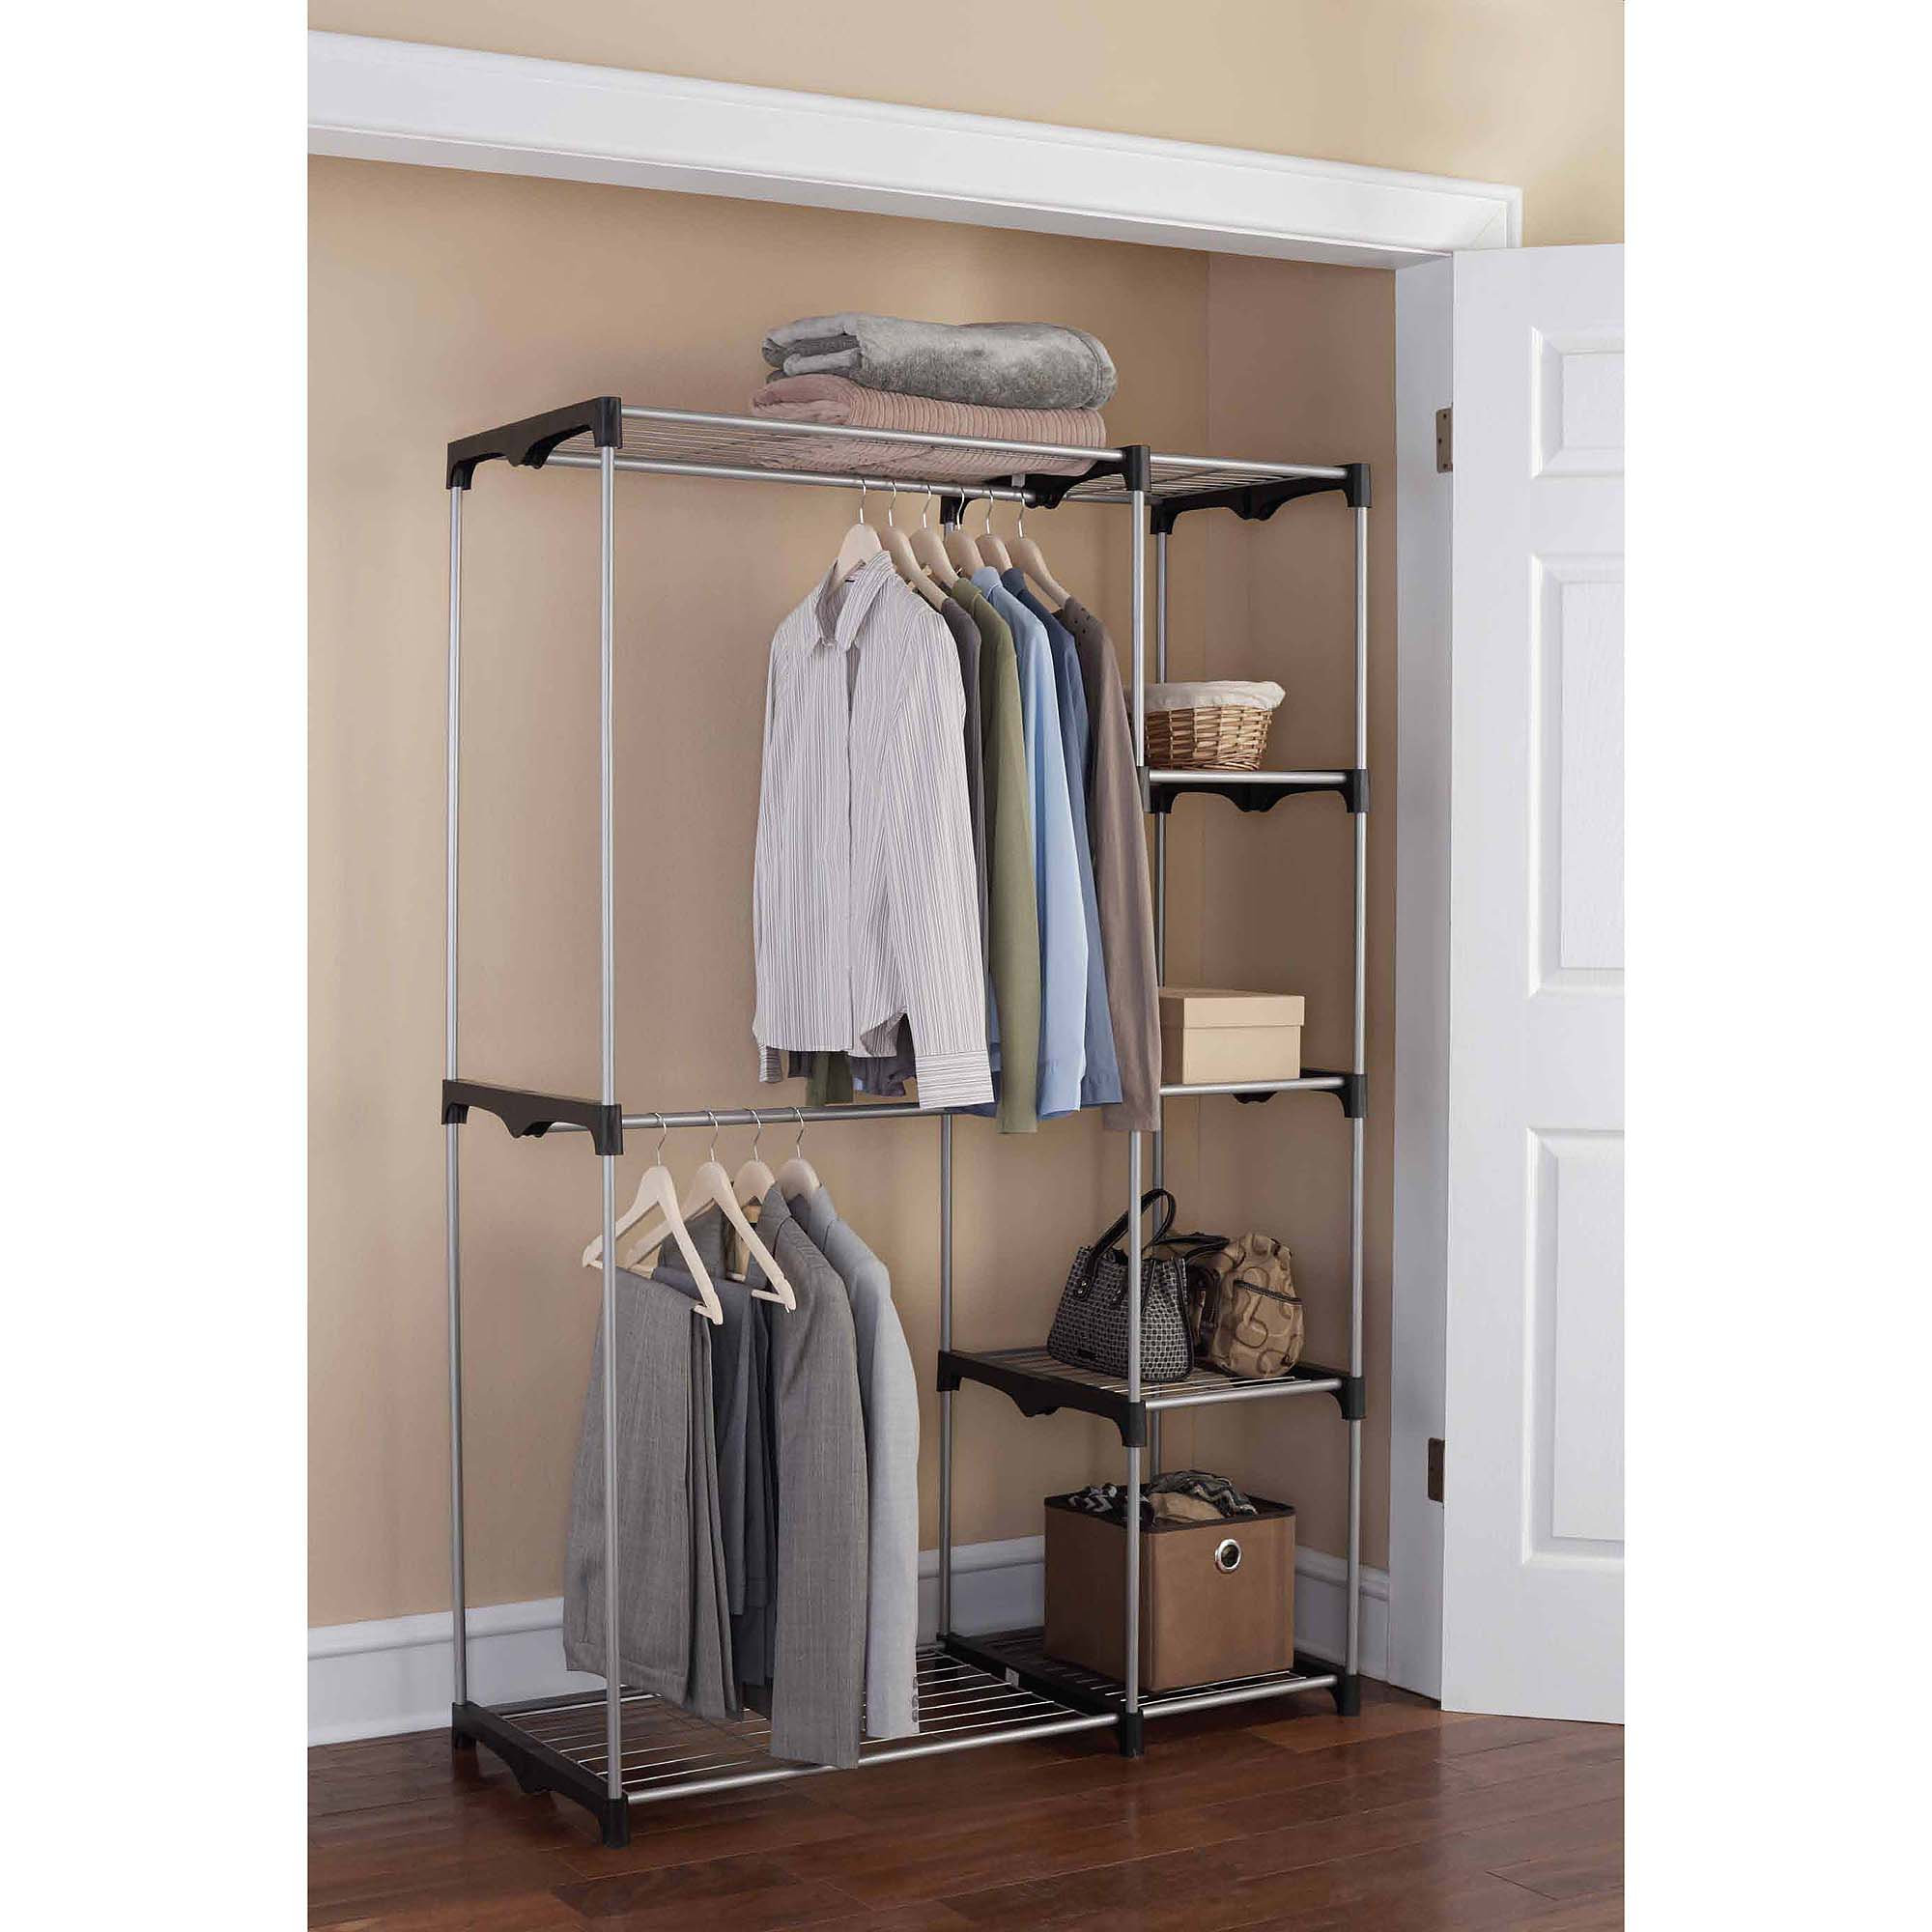 mainstays wire shelf closet organizer, black/silver JBDJZQA